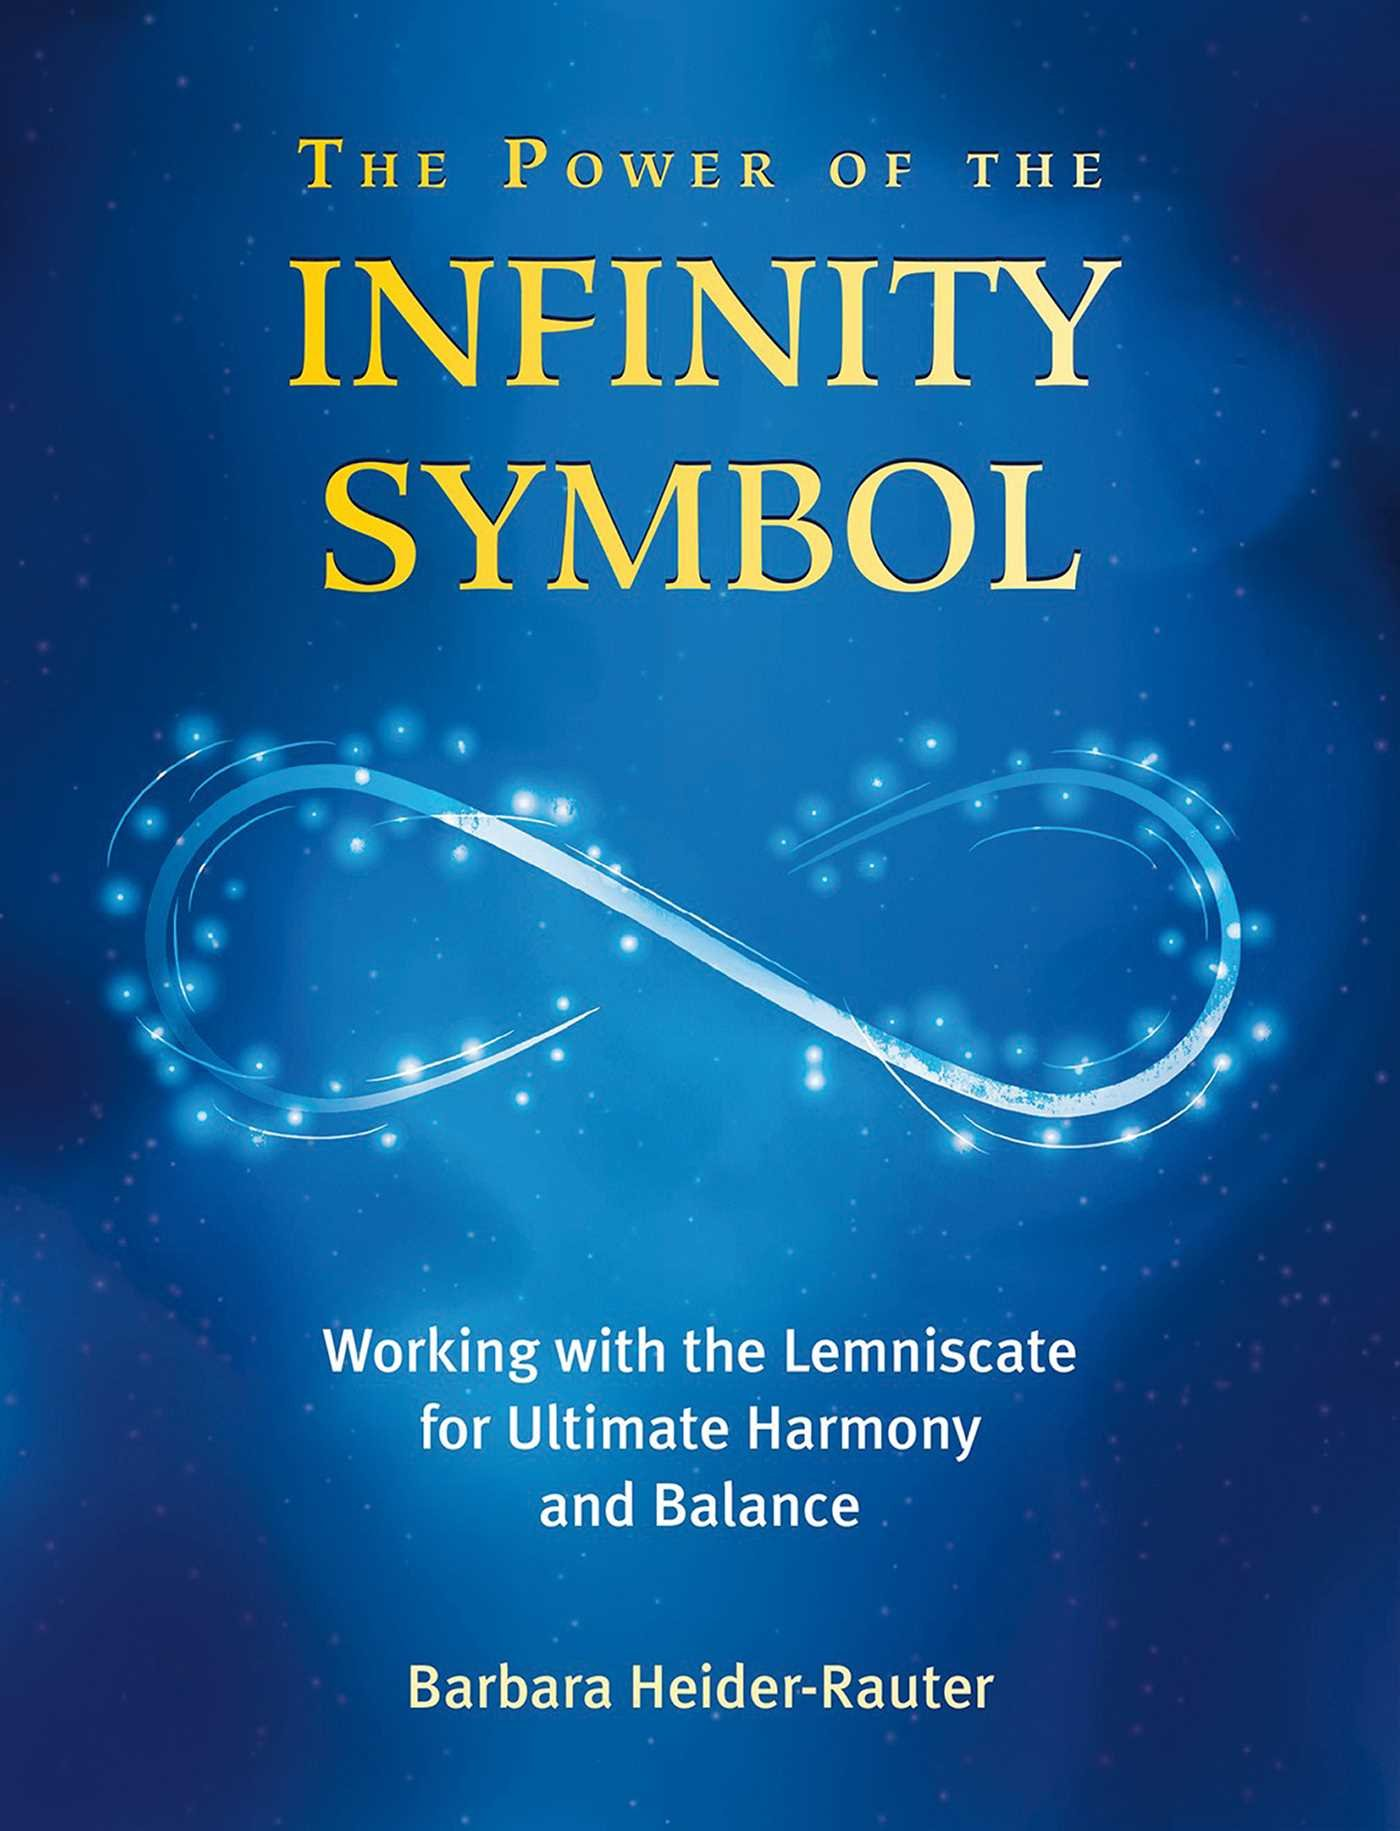 The power of the infinity symbol working with the lemniscate for the power of the infinity symbol working with the lemniscate for ultimate harmony and balance barbara heider rauter 9781844097524 amazon books biocorpaavc Choice Image